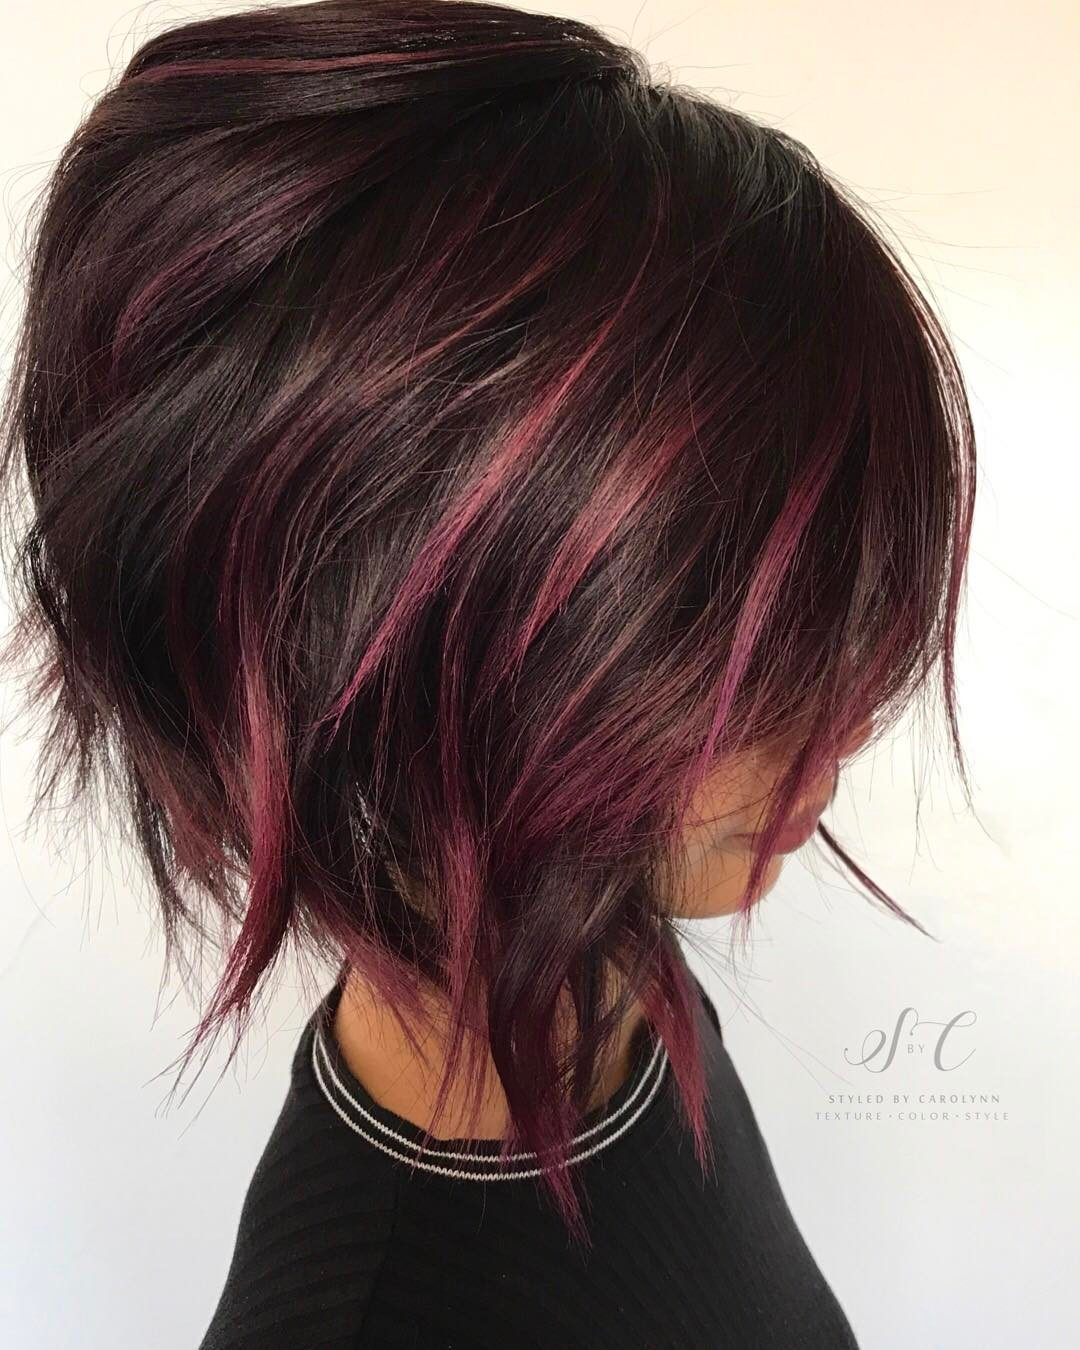 Chocolate Bob with Mauve Highlights